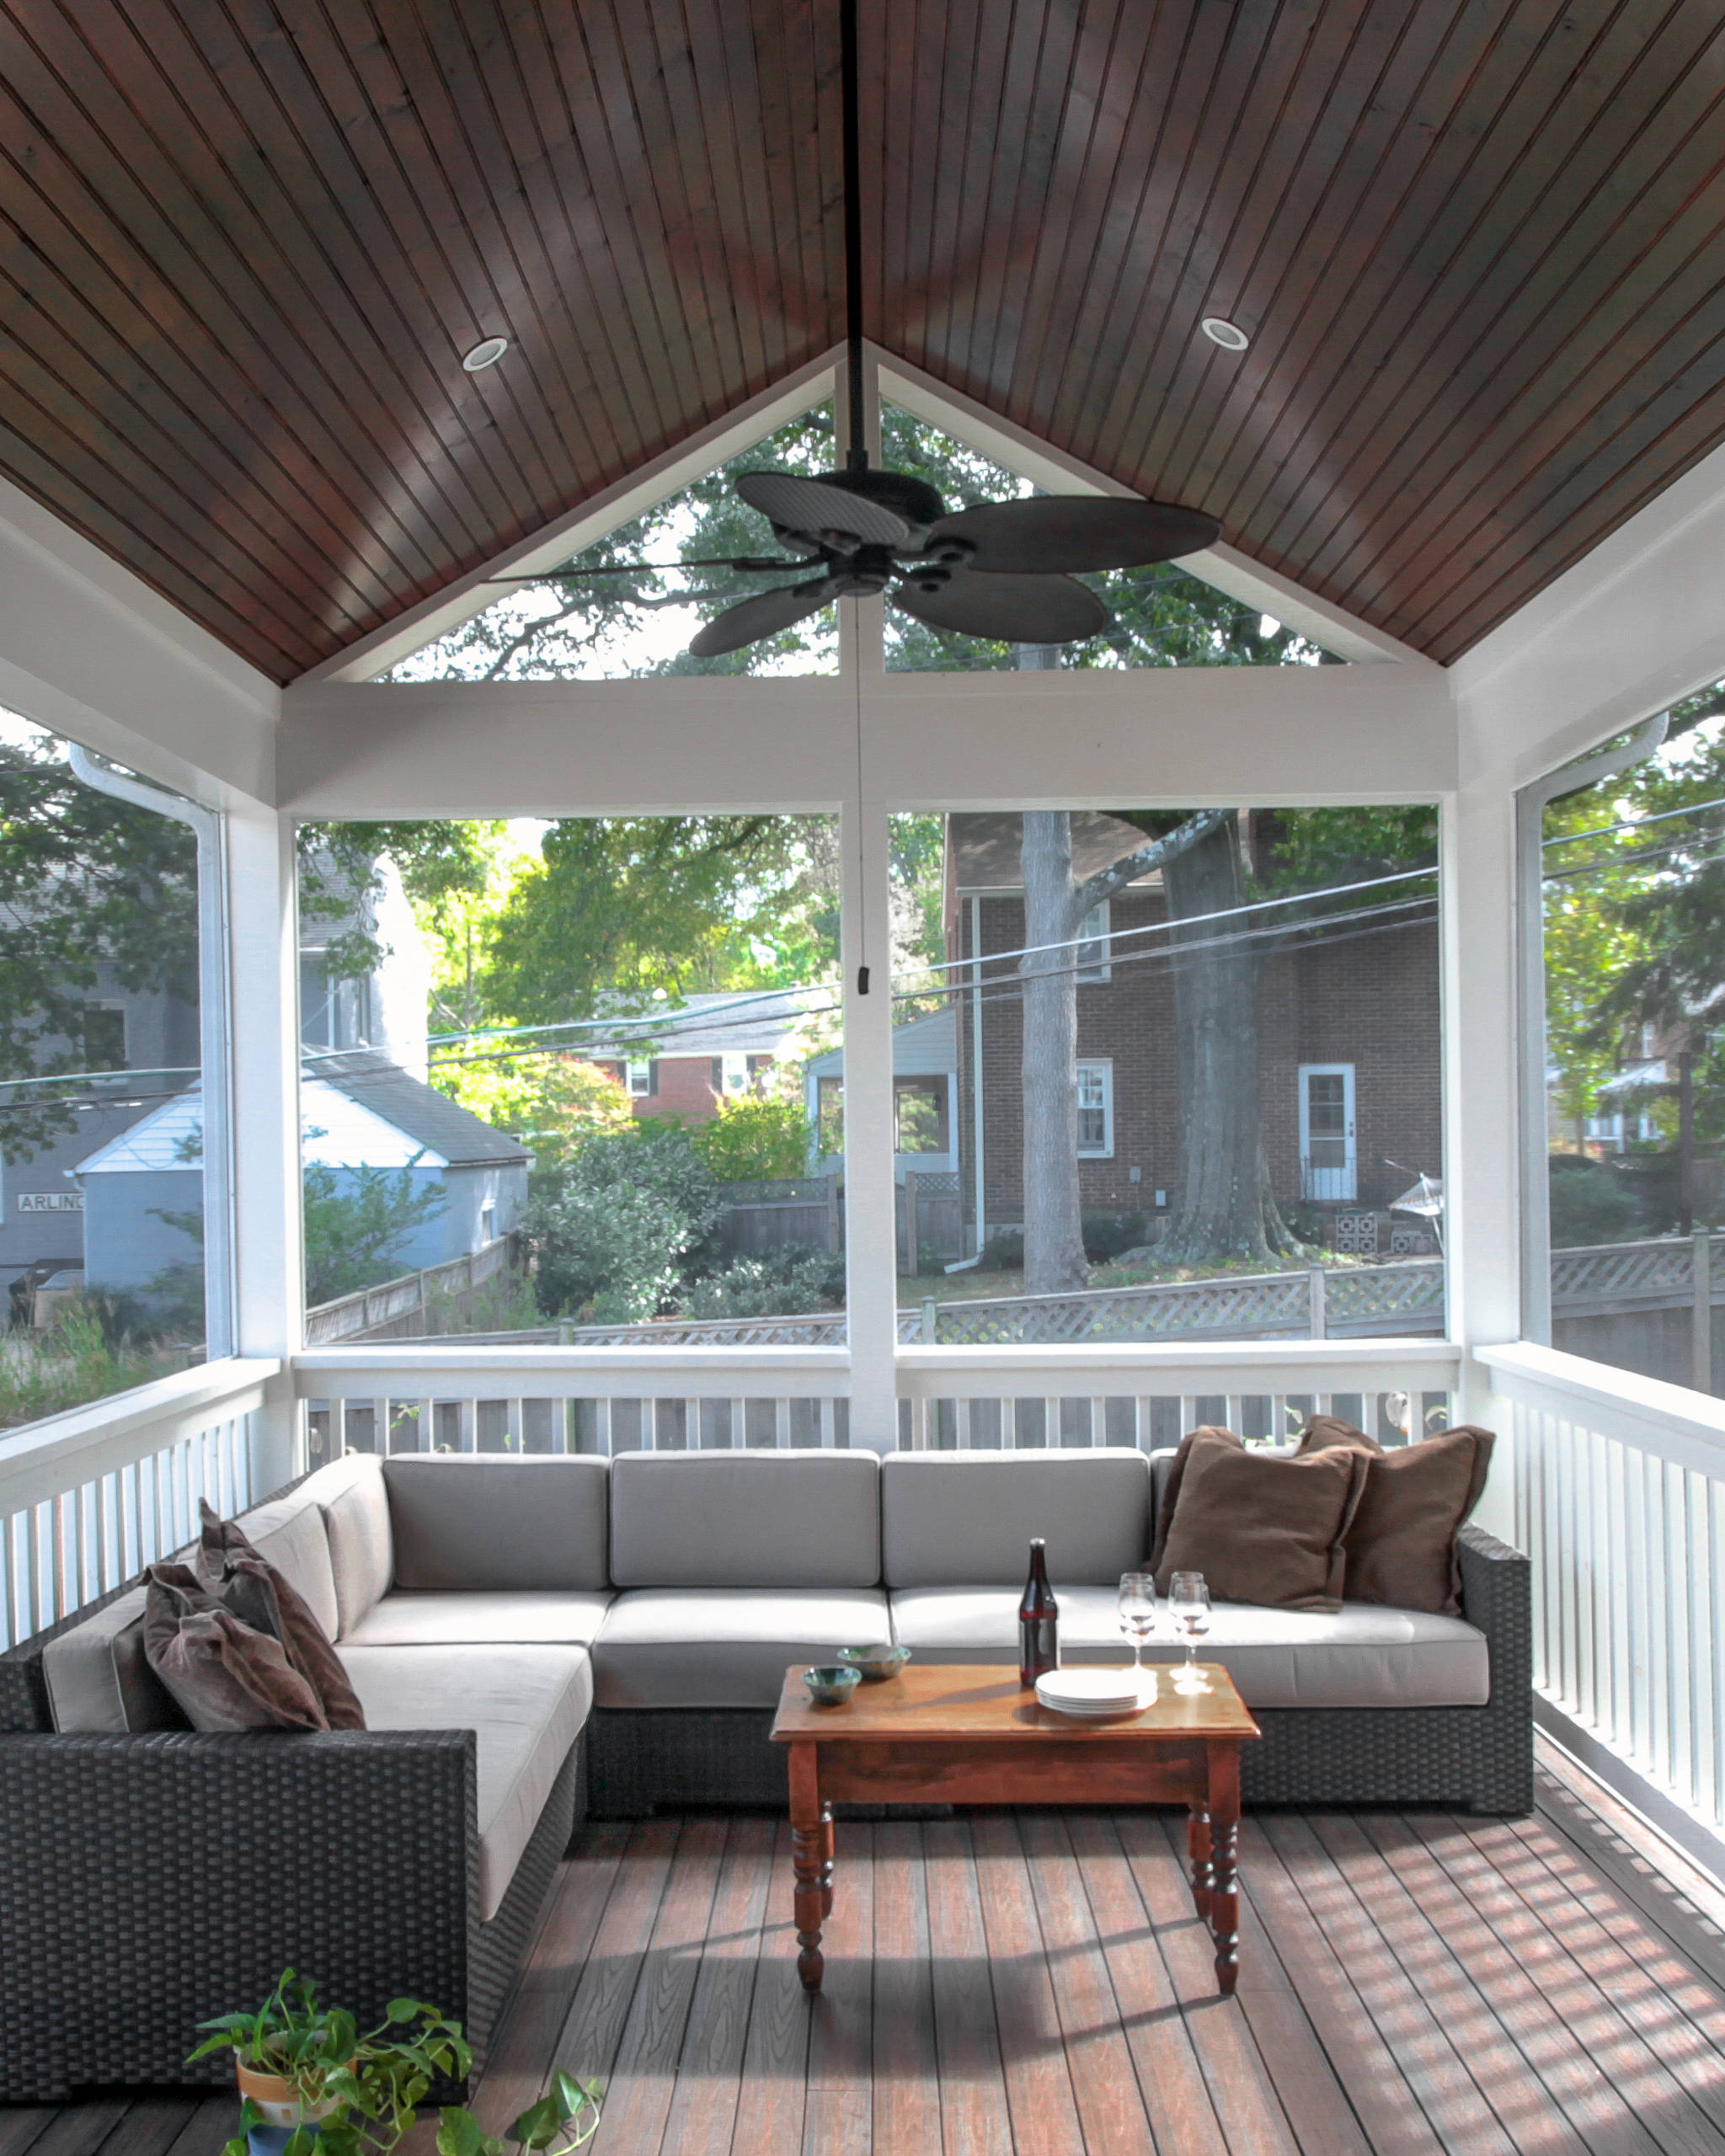 25 Beautiful Screened-In Porch Pictures & Ideas - September, 25